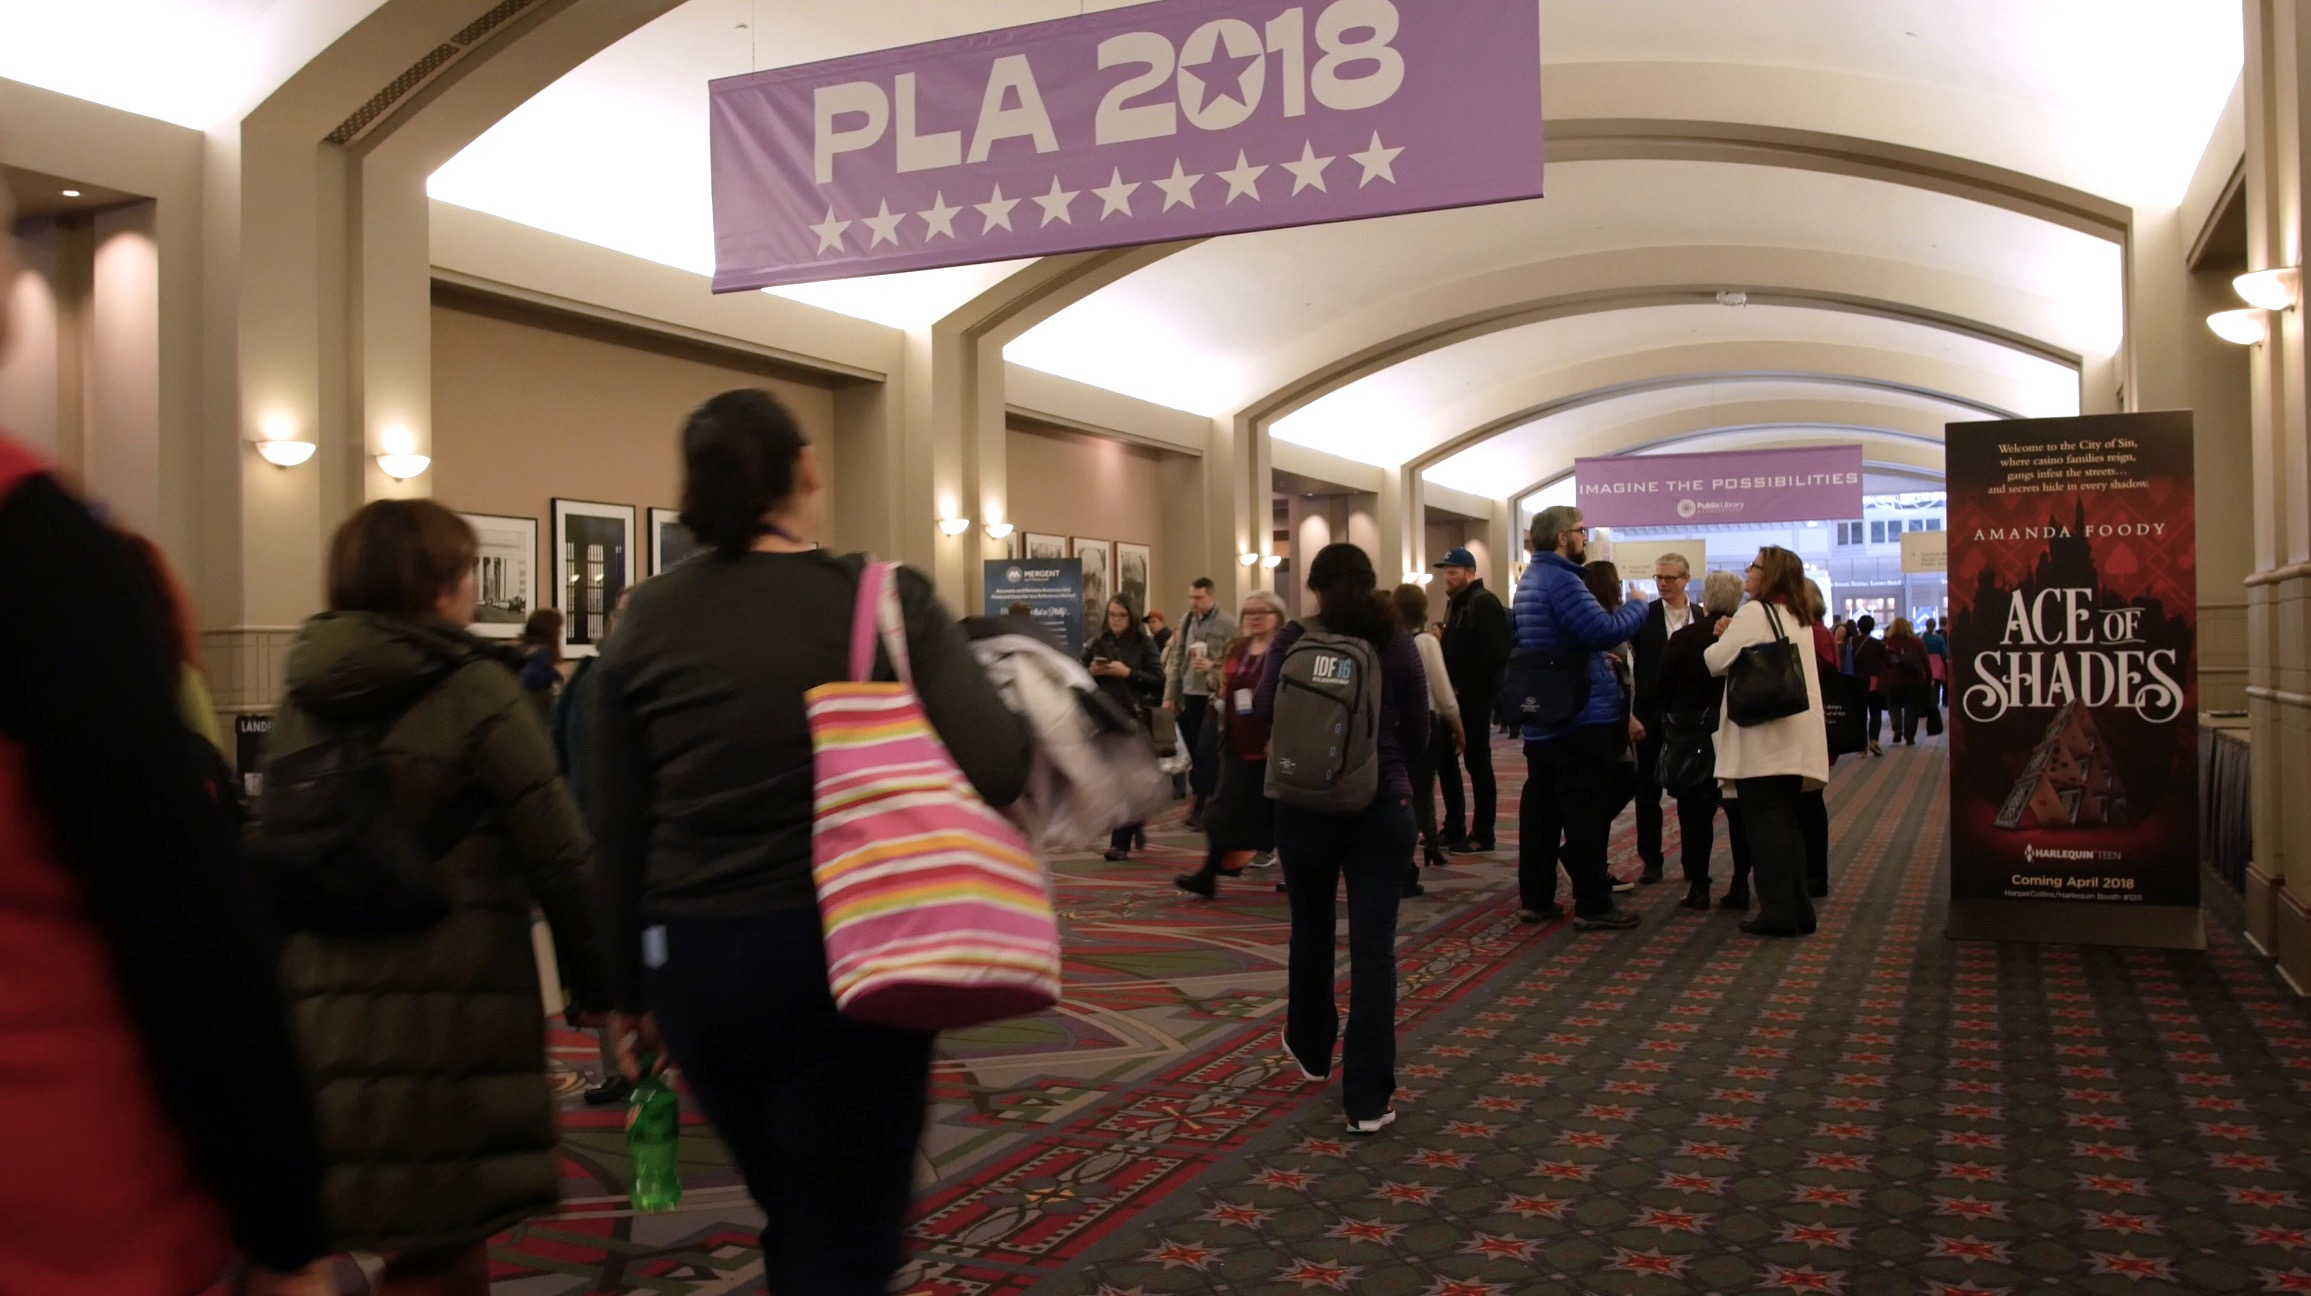 Librarians walking into the PLA 2018 conference.